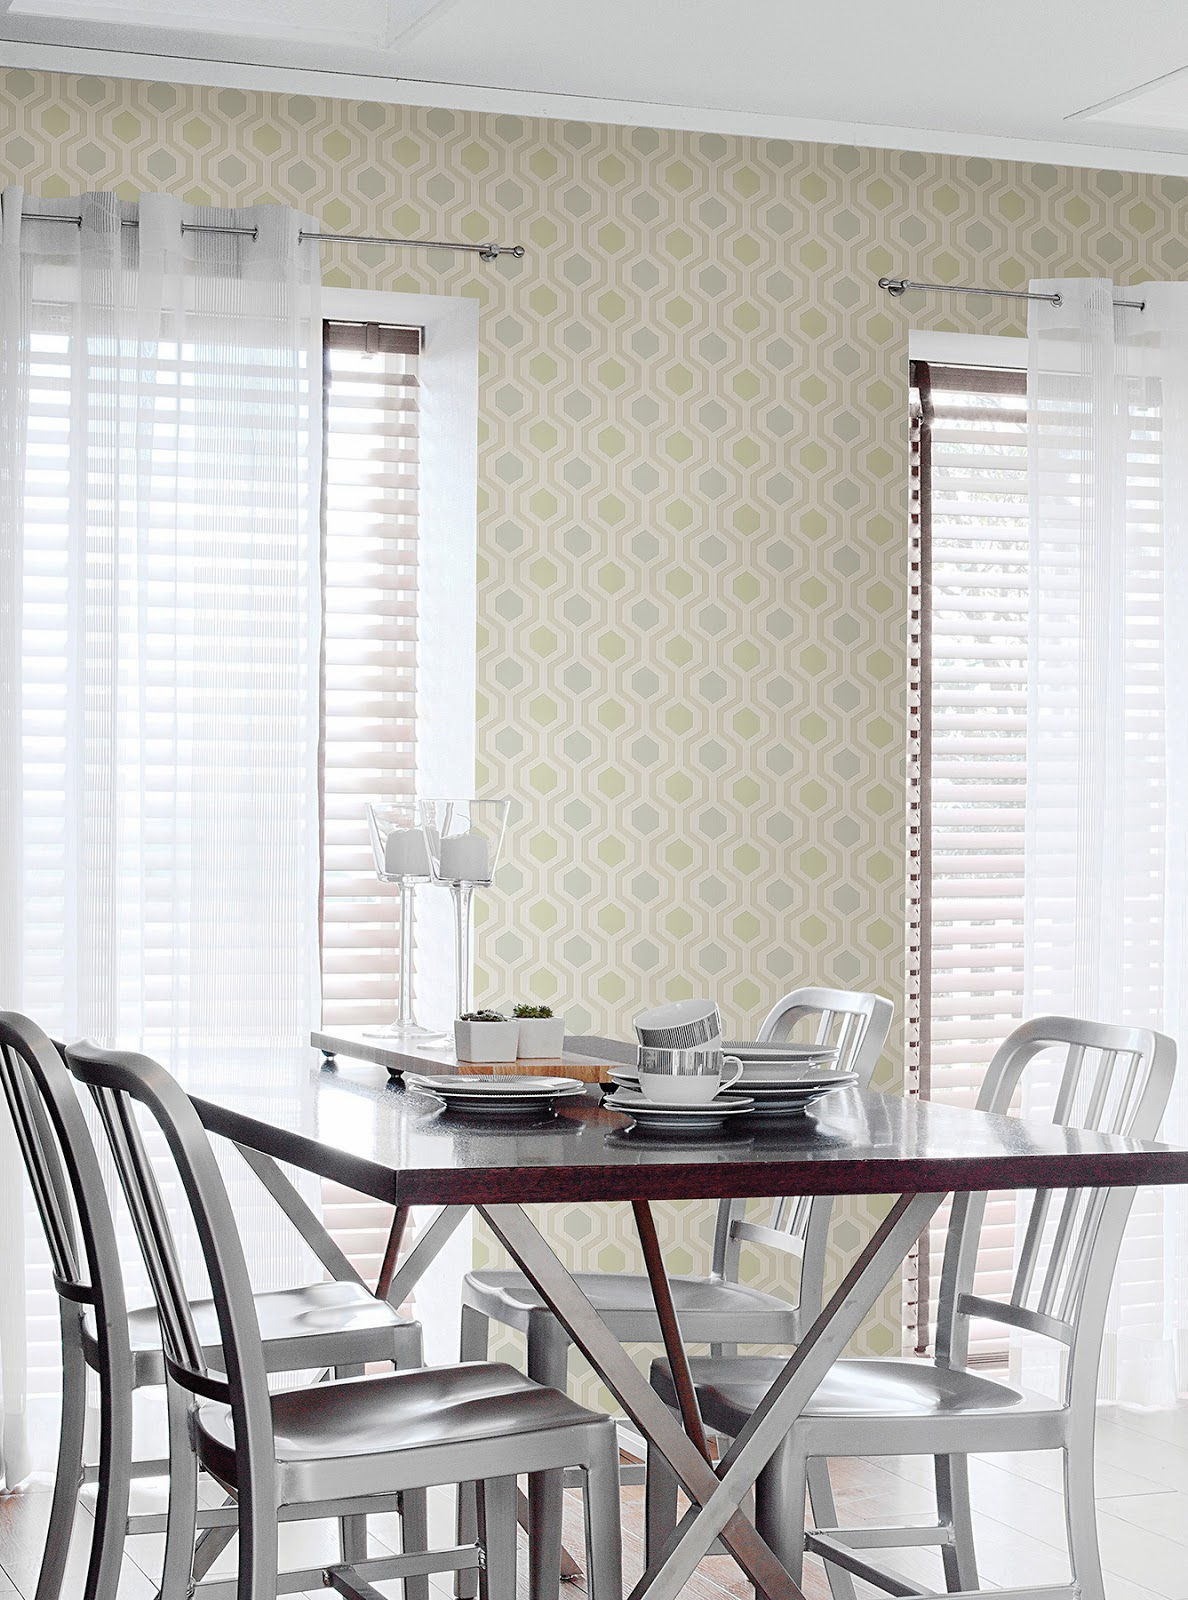 https://www.wallcoveringsforless.com/shoppingcart/prodlist1.CFM?page=_prod_detail.cfm&product_id=42818&startrow=37&search=resource%20iii&pagereturn=_search.cfm